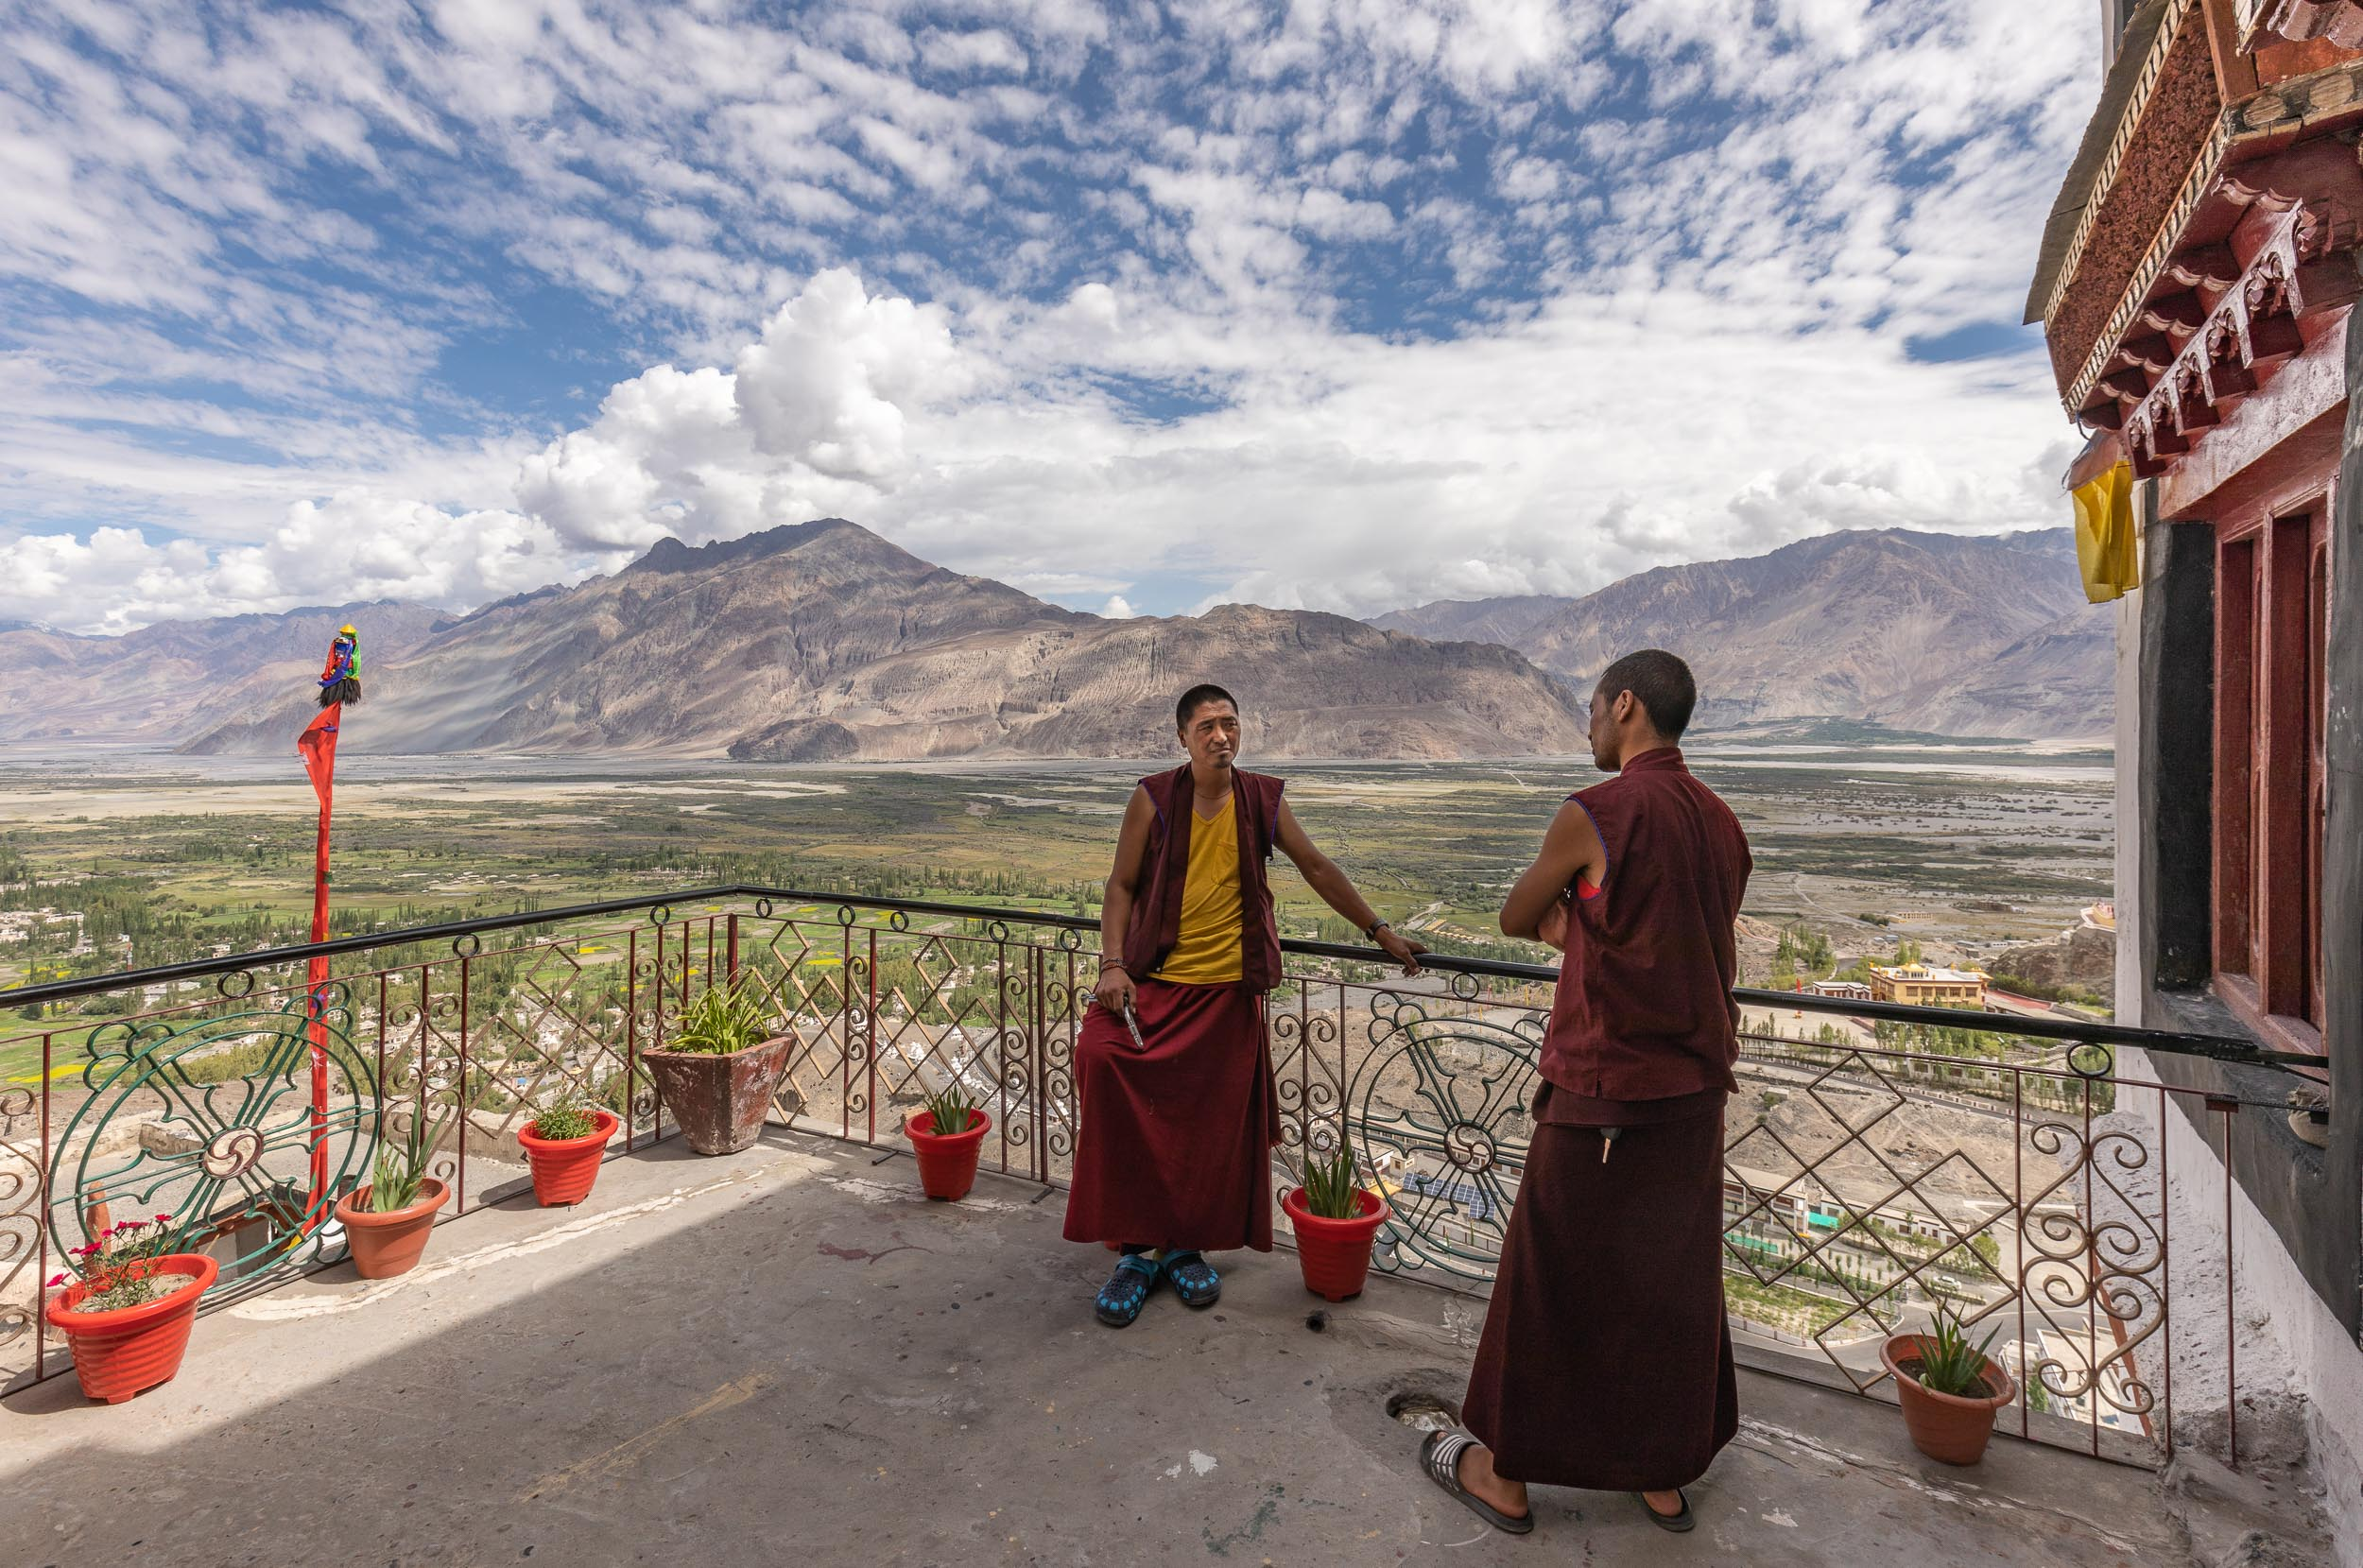 India-Ladakh-Nubra-Valley-Monks-Porch